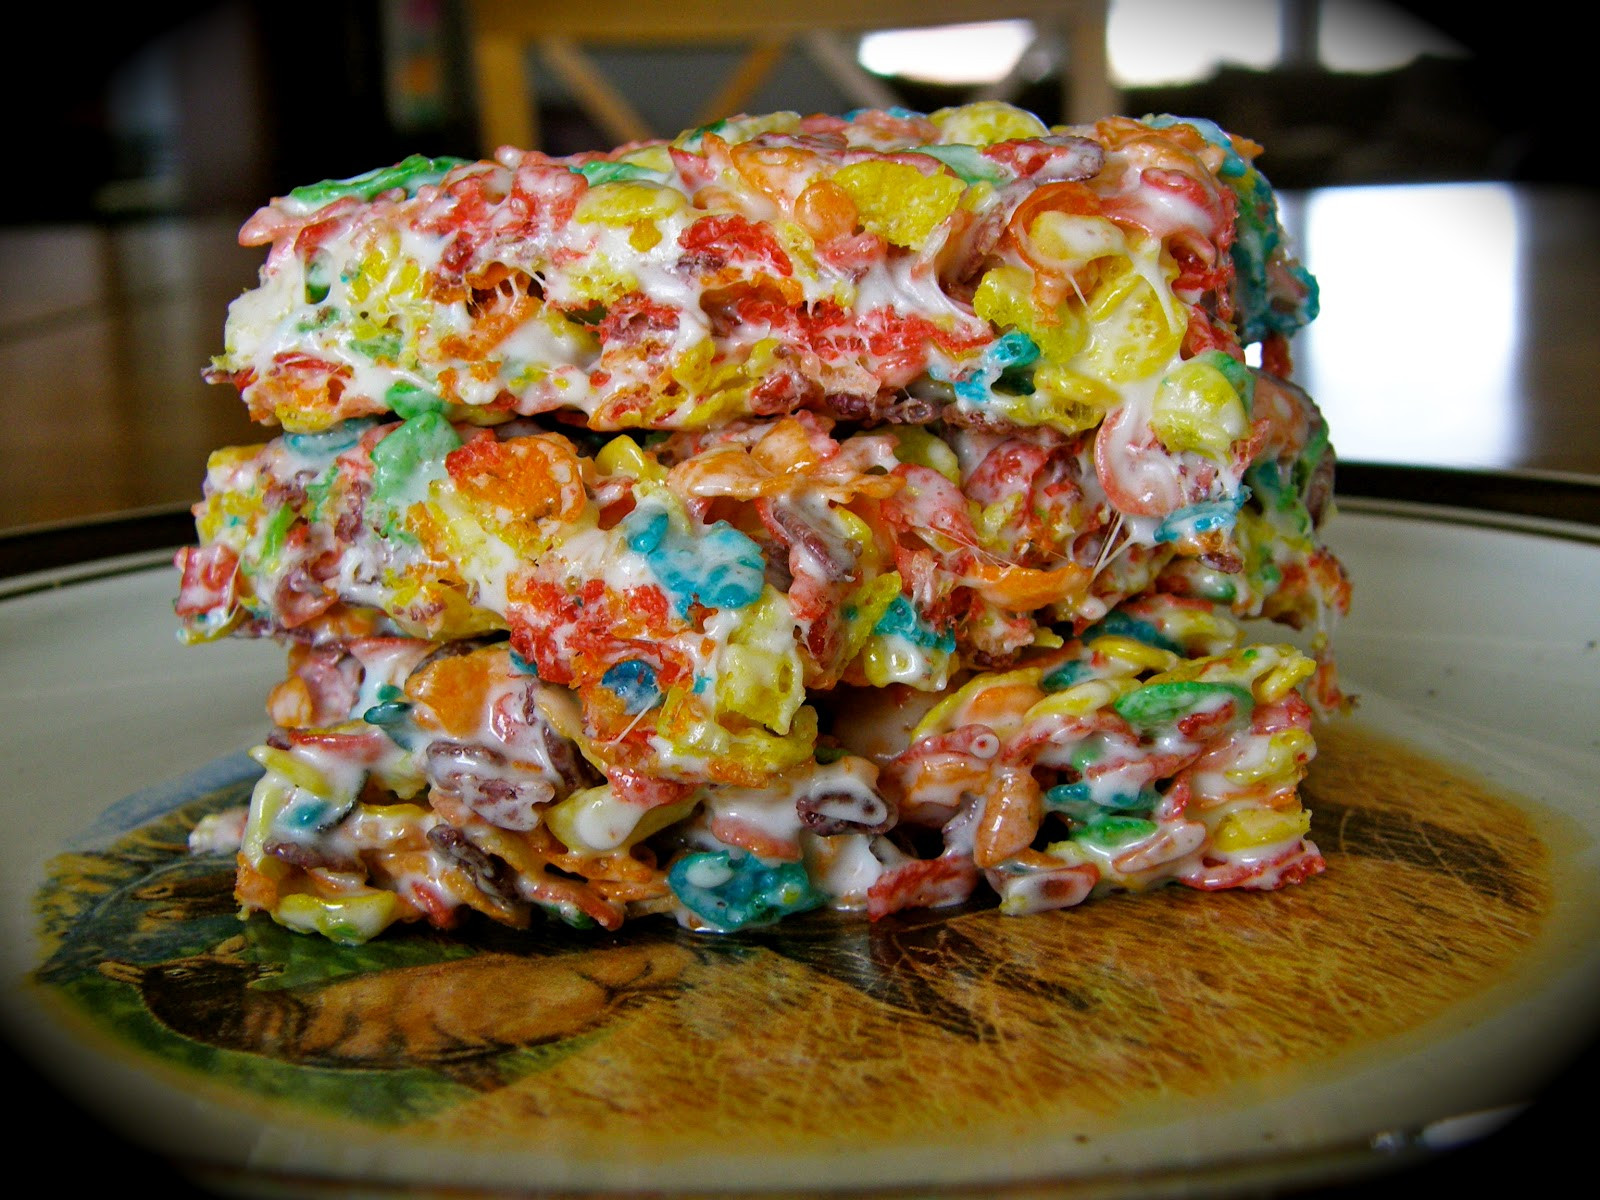 Fruity Pebbles Desserts  It s Easier Than You Might Think Fruity Pebbles Treats